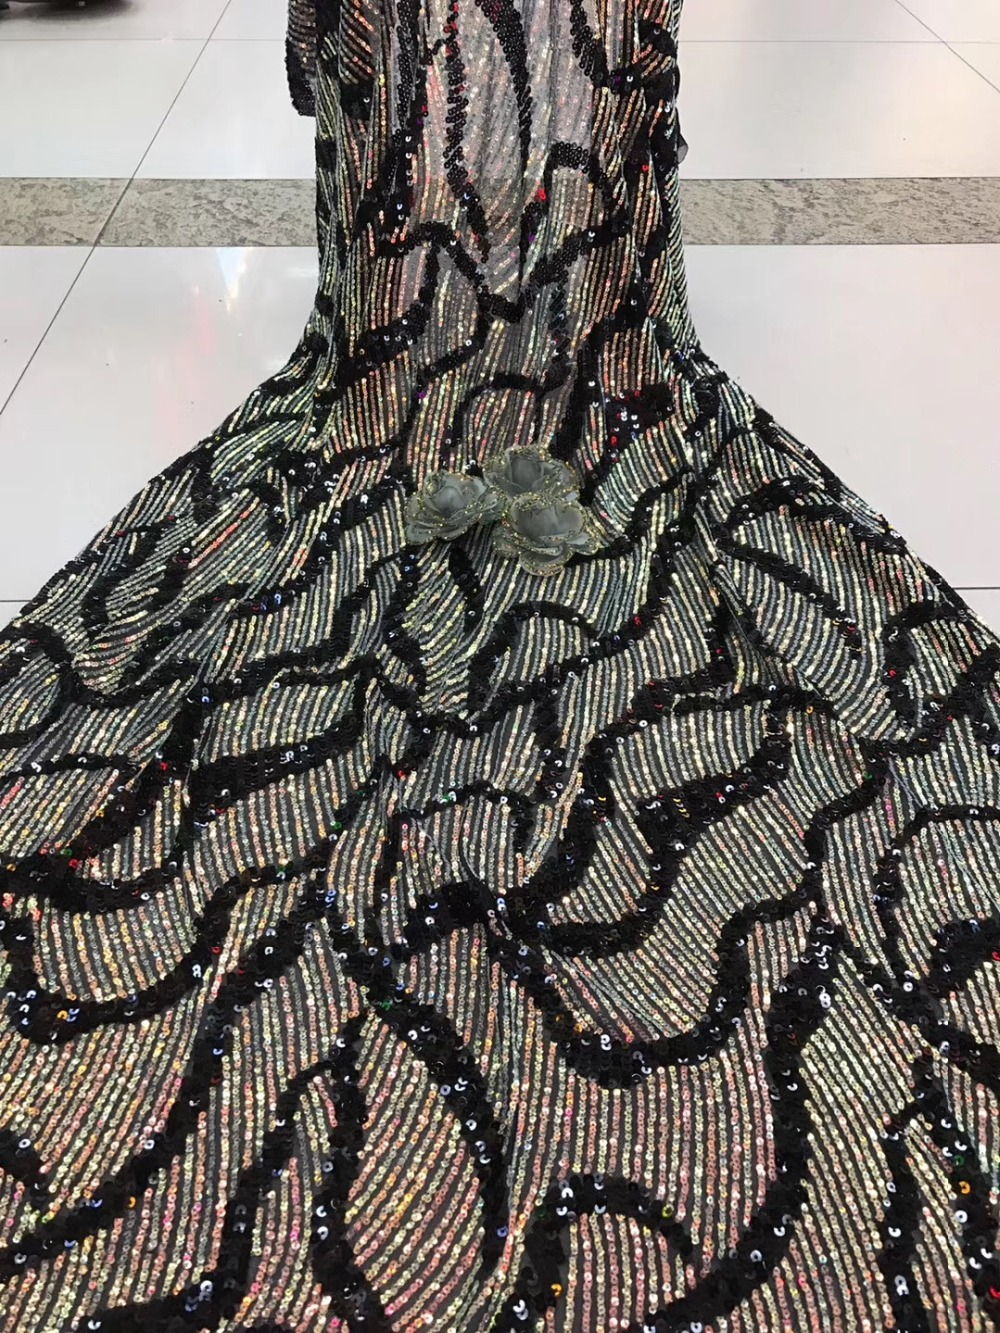 French lace fabric 5yds/pce dhl full colorful sequins net fabrics women gorgeous luxury lagos party nigerian wedding asoebi 2019French lace fabric 5yds/pce dhl full colorful sequins net fabrics women gorgeous luxury lagos party nigerian wedding asoebi 2019